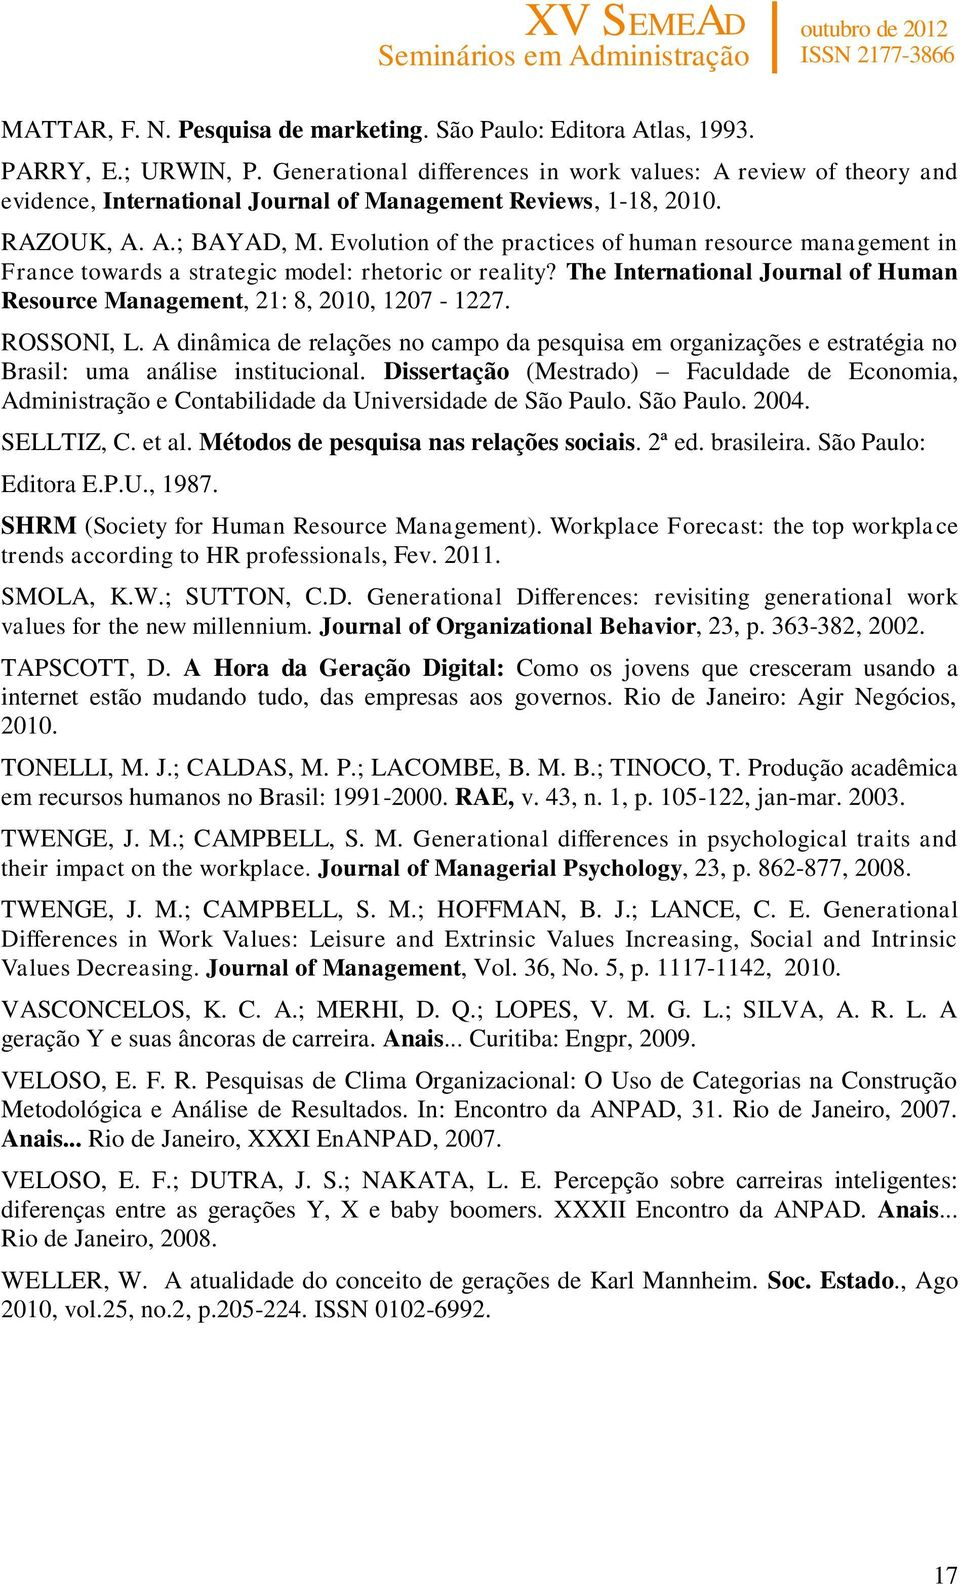 Evolution of the practices of human resource management in France towards a strategic model: rhetoric or reality? The International Journal of Human Resource Management, 21: 8, 2010, 1207-1227.